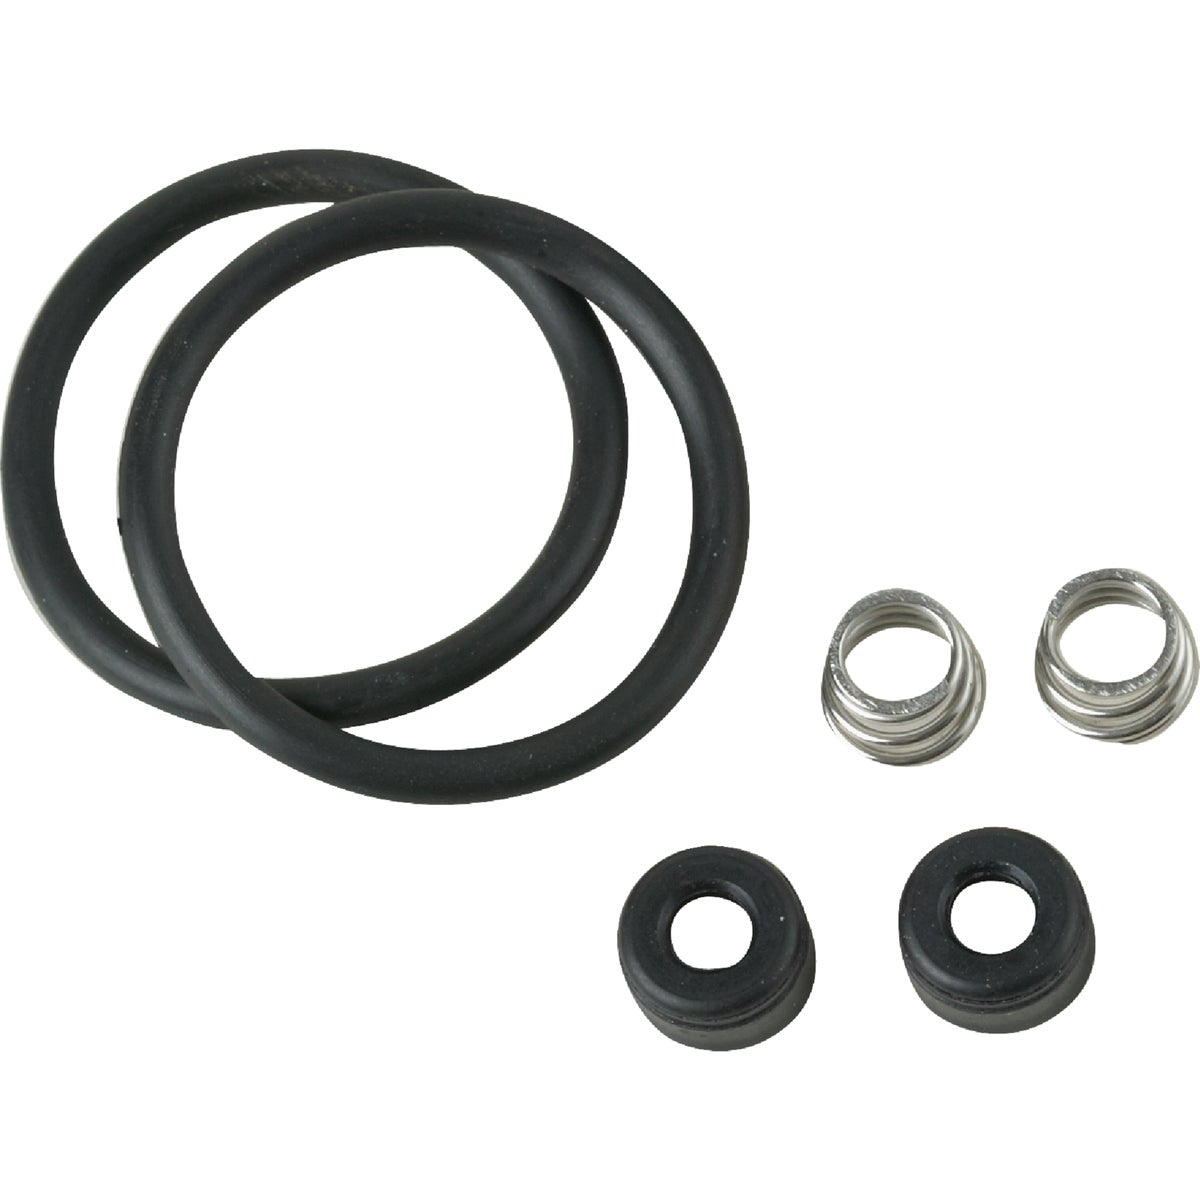 FAUCET REPAIR KIT - A663016N-JPF1 by Globe Union